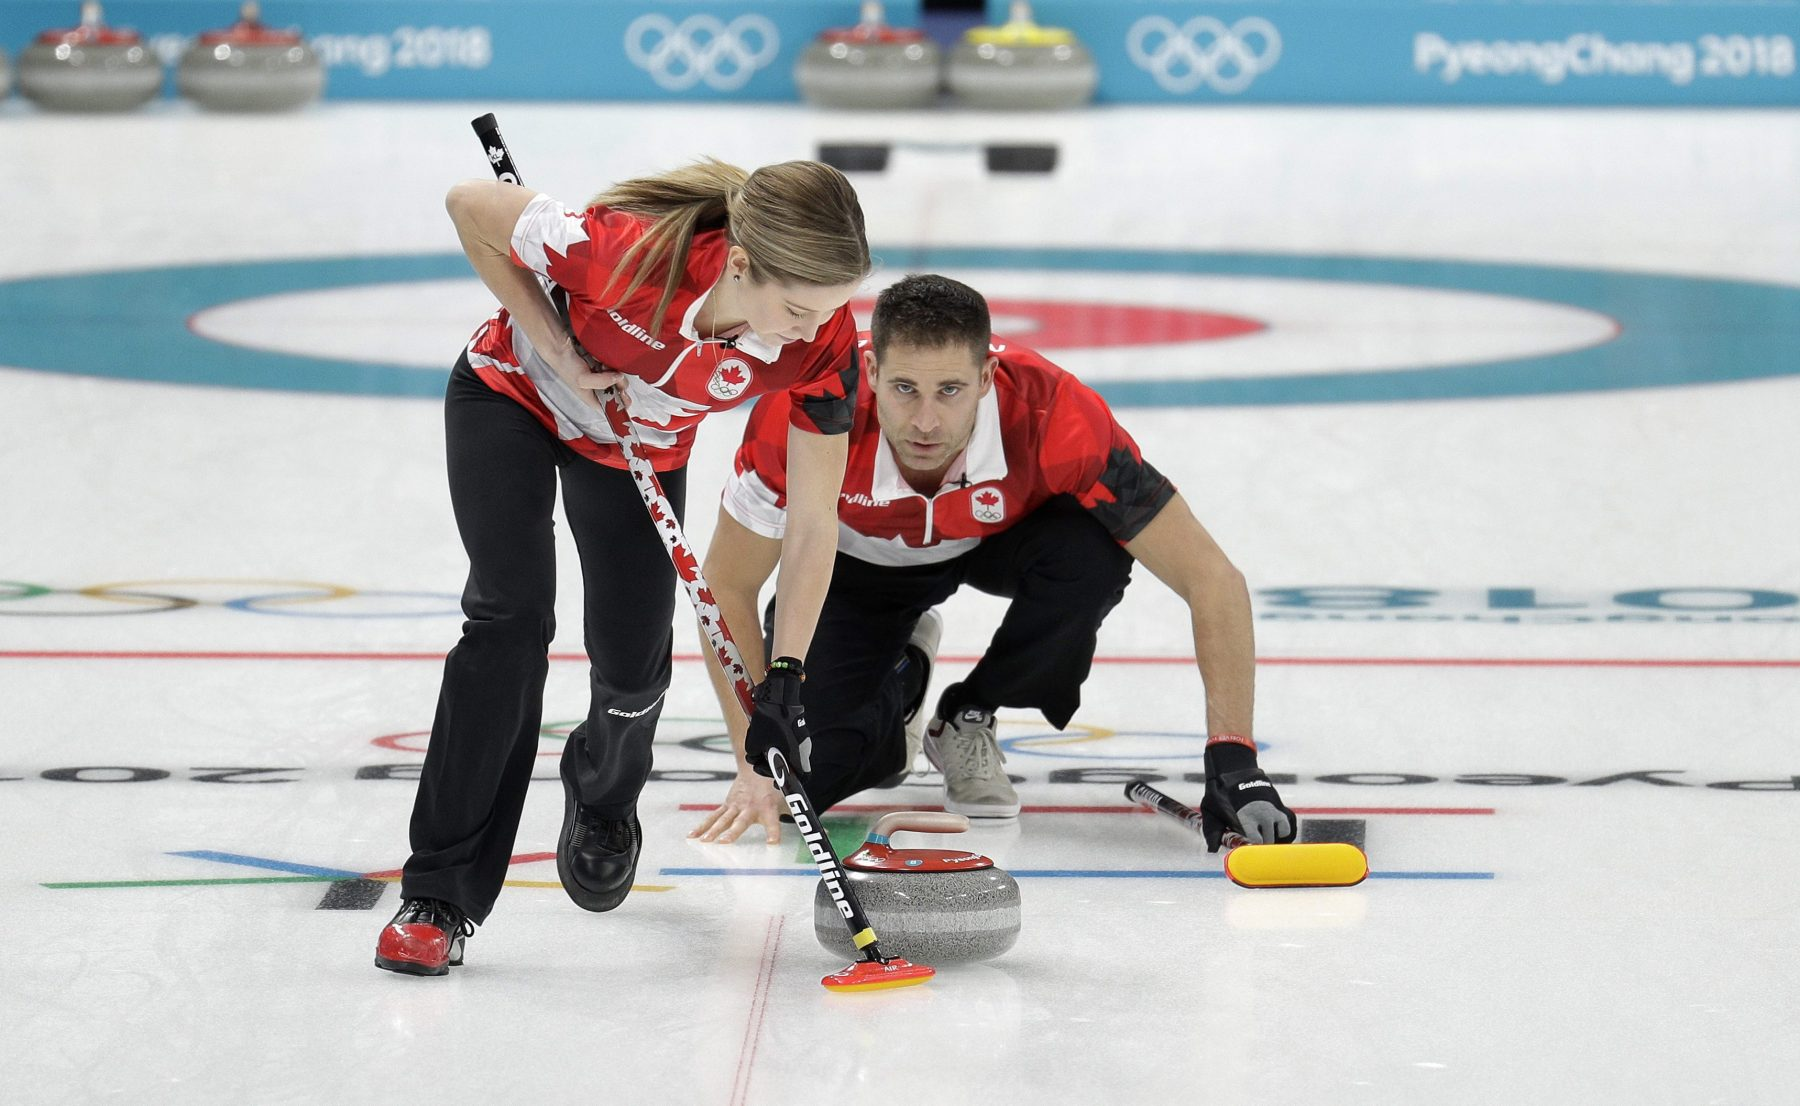 John Morris and Kaitlyn Lawes compete in semifinals at the 2018 Games